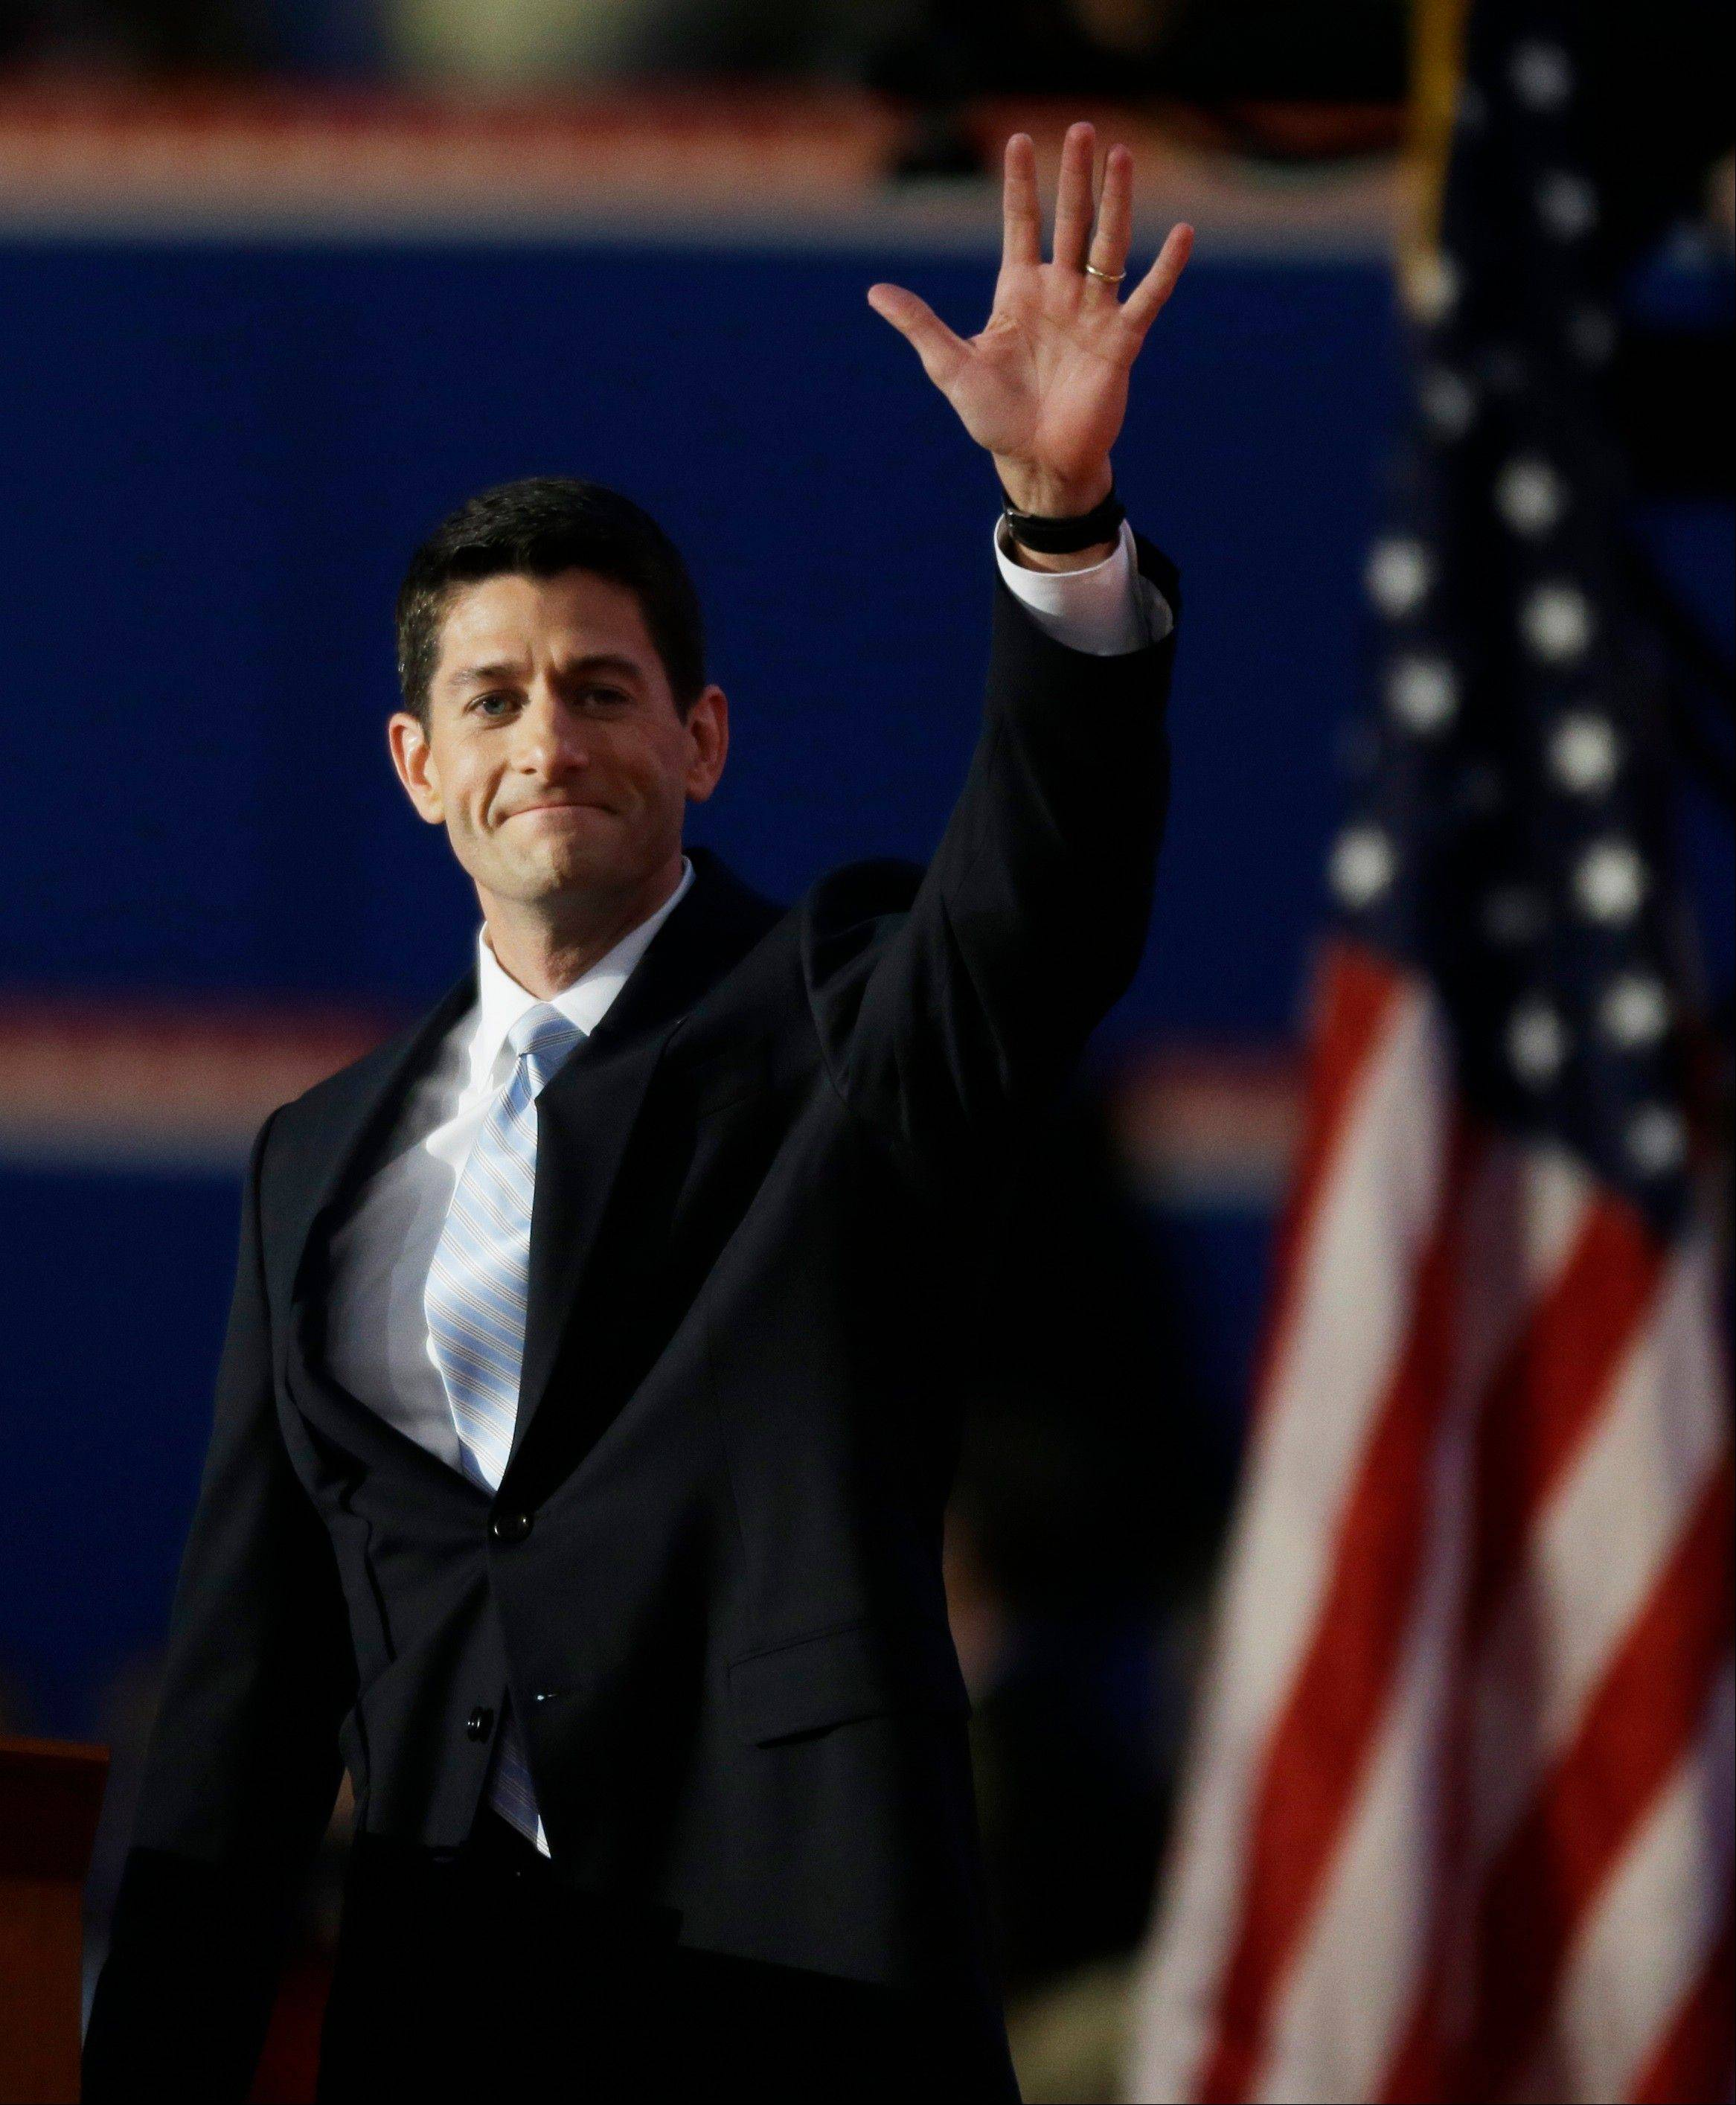 Republican vice presidential nominee, Rep. Paul Ryan waves as he arrives to address the Republican National Convention in Tampa, Fla., on Wednesday, Aug. 29, 2012.